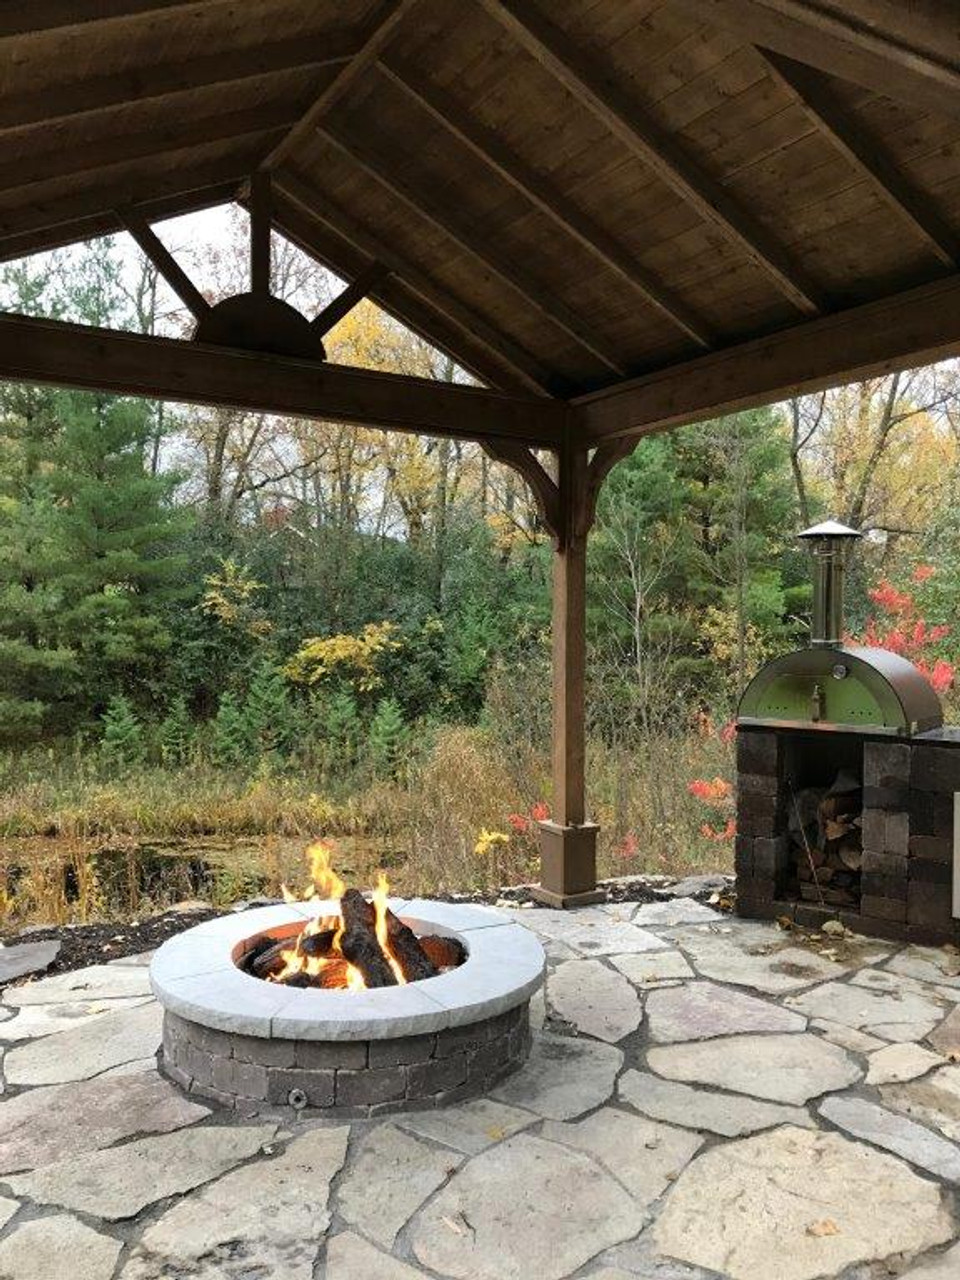 Customer photo shows operating fire pit. Open gable design and functional cupola provide adequate ventilation.